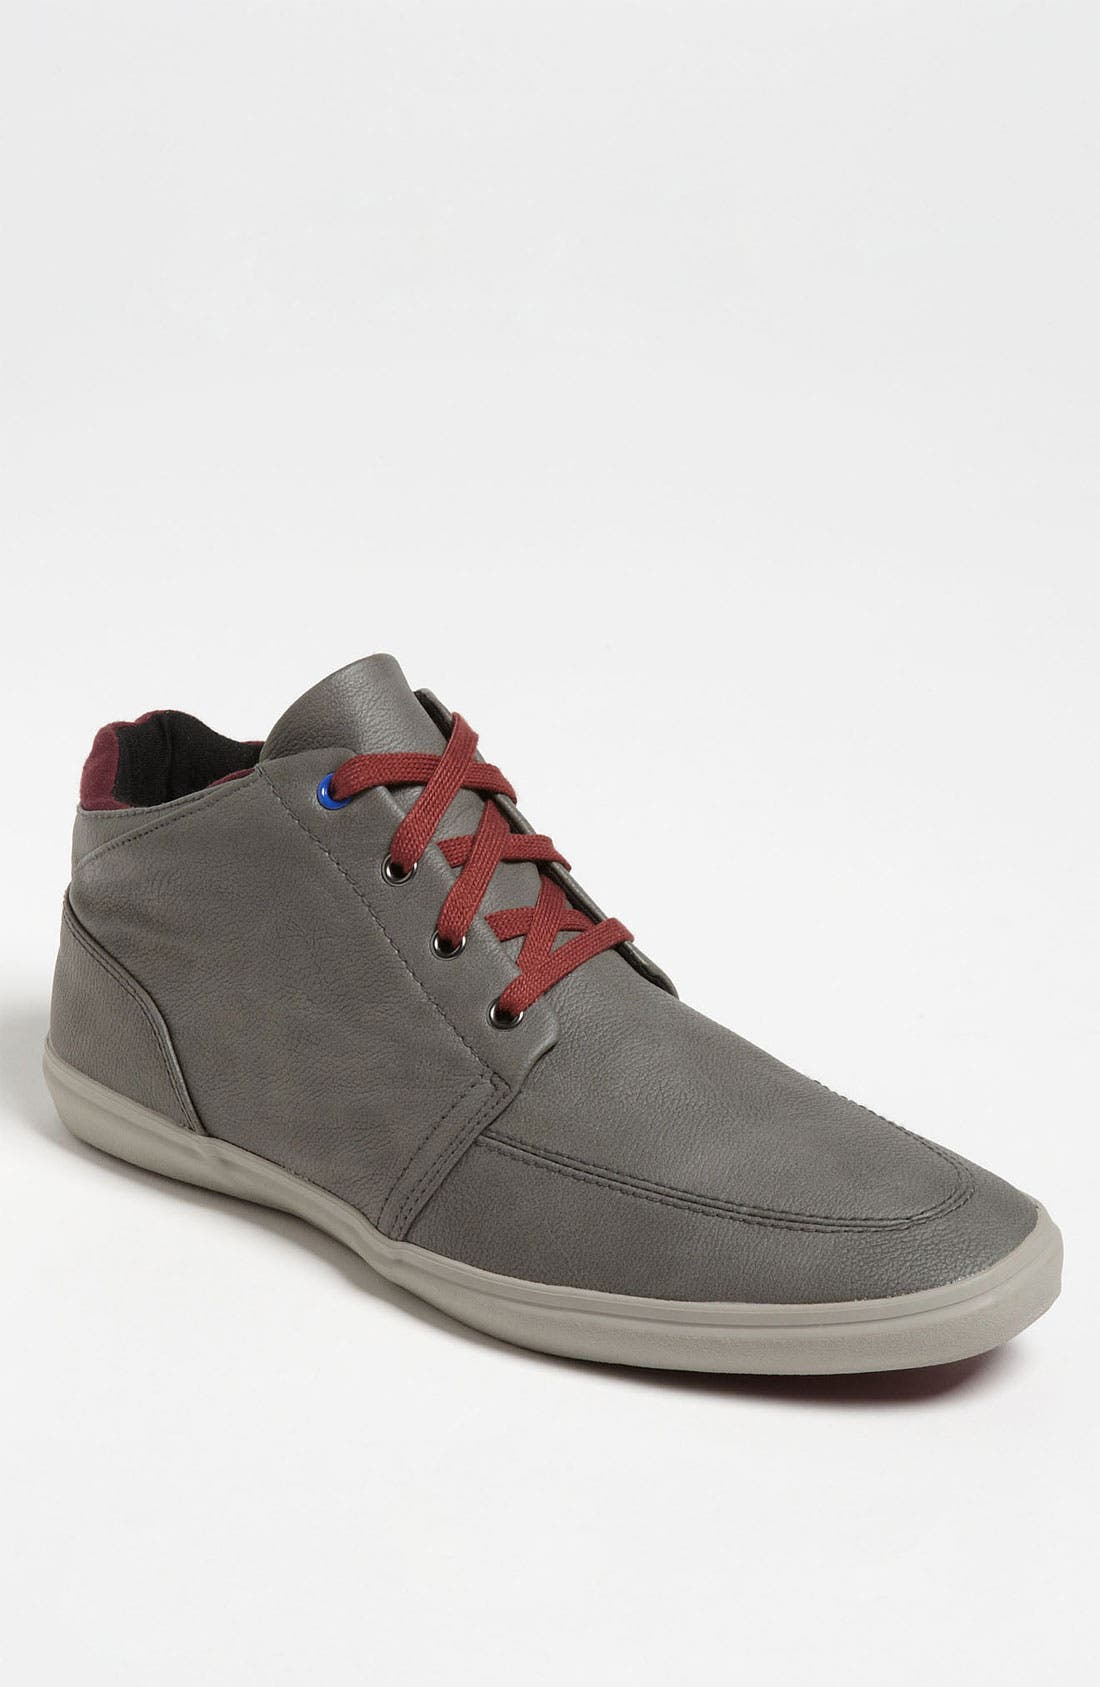 Alternate Image 1 Selected - ALDO 'Murri' High Top Sneaker